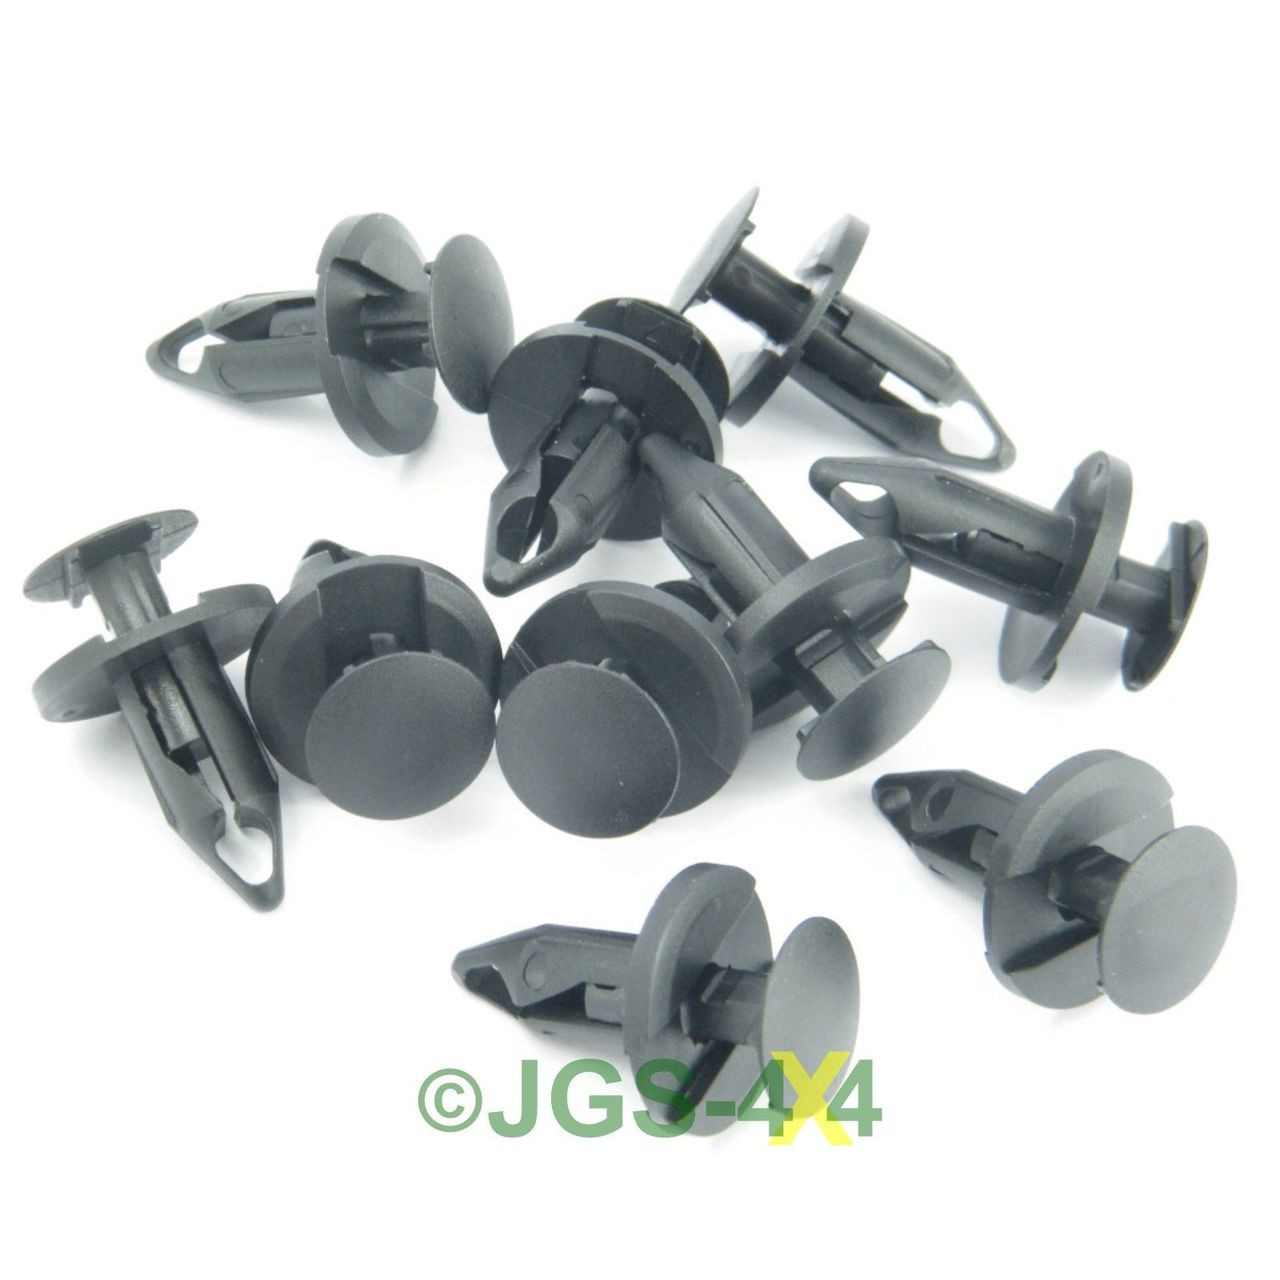 Wheel Arch Spat Clips Pack of 60 for Land Rover Defender AFU1075